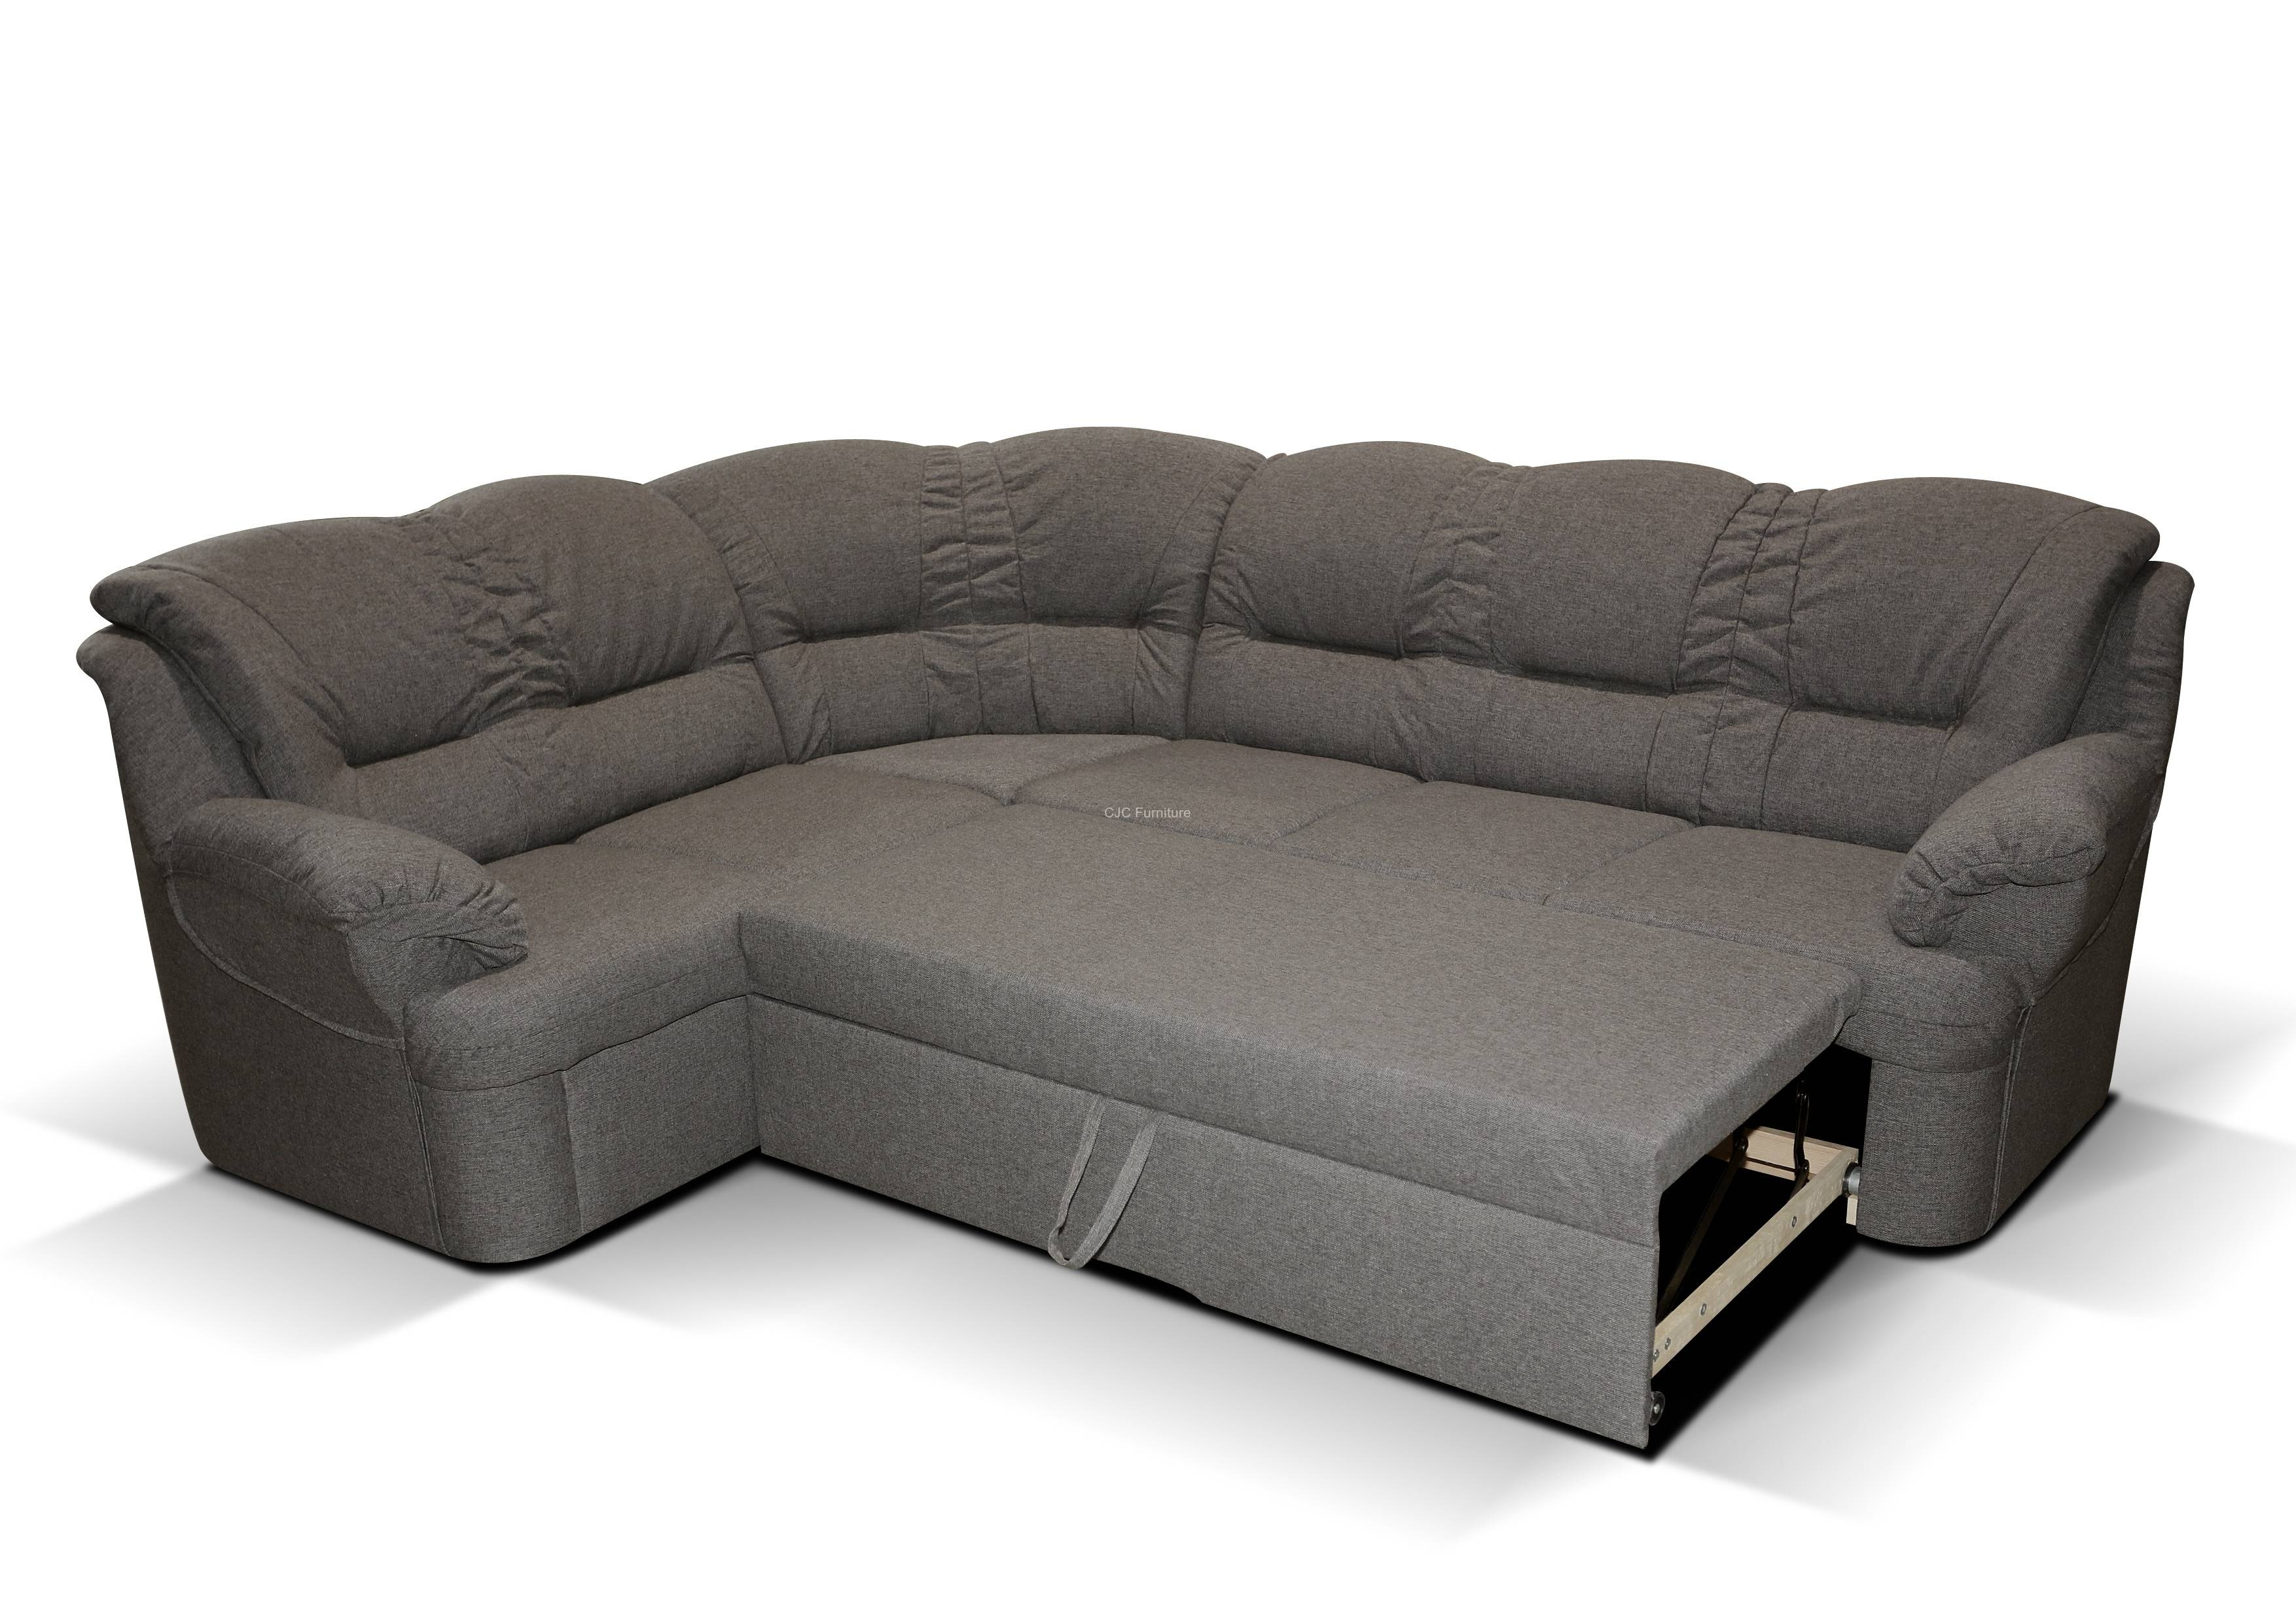 Astonishing Cheap Corner Sofa Bed Uk 82 In Innovative Sofa Beds intended for Cheap Corner Sofa (Image 3 of 30)